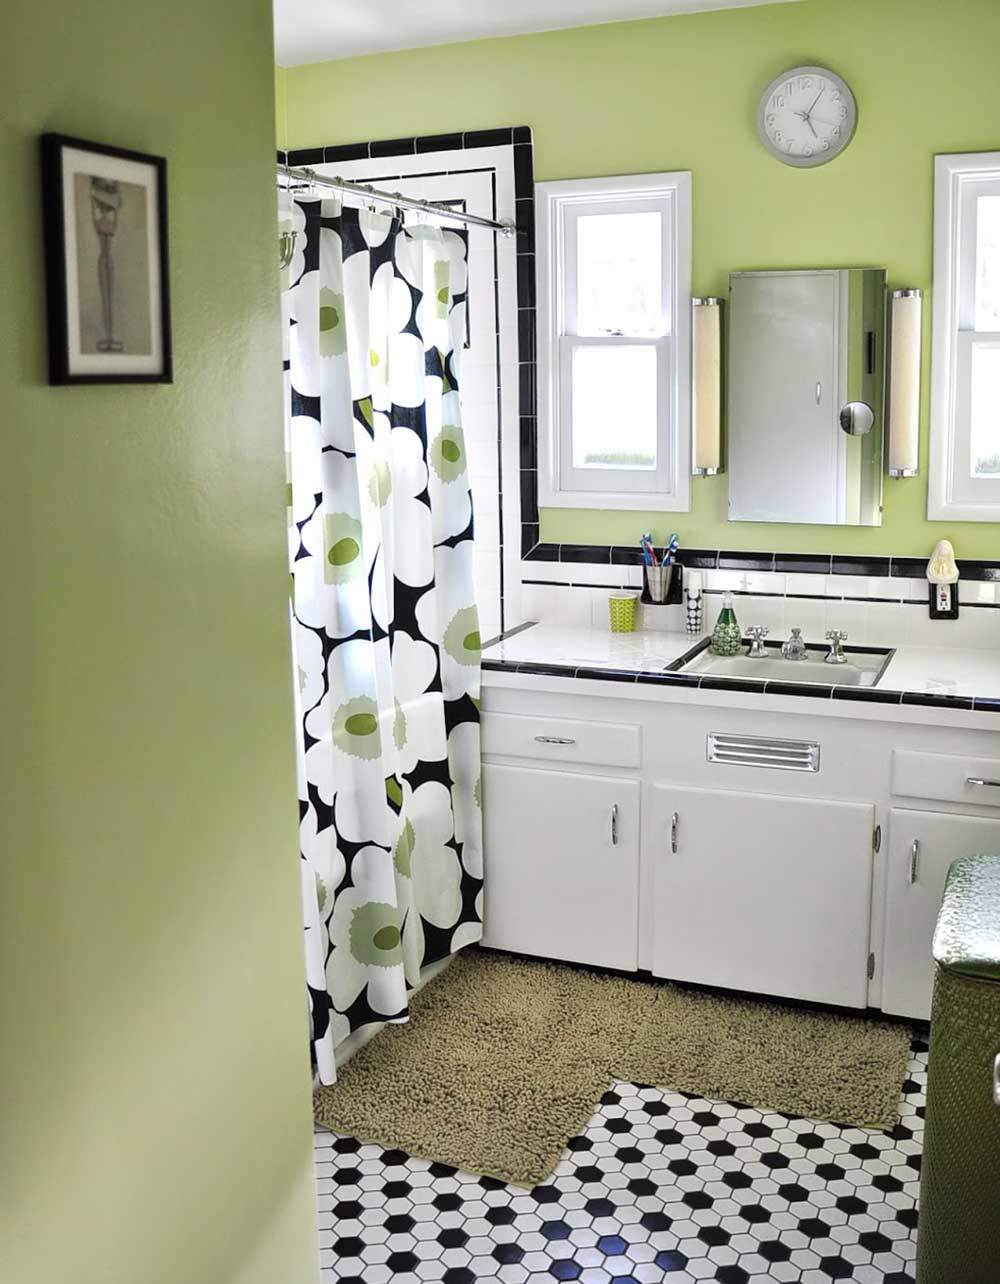 Black and white bathroom walls - Vintage Black And White Tile Bathroom